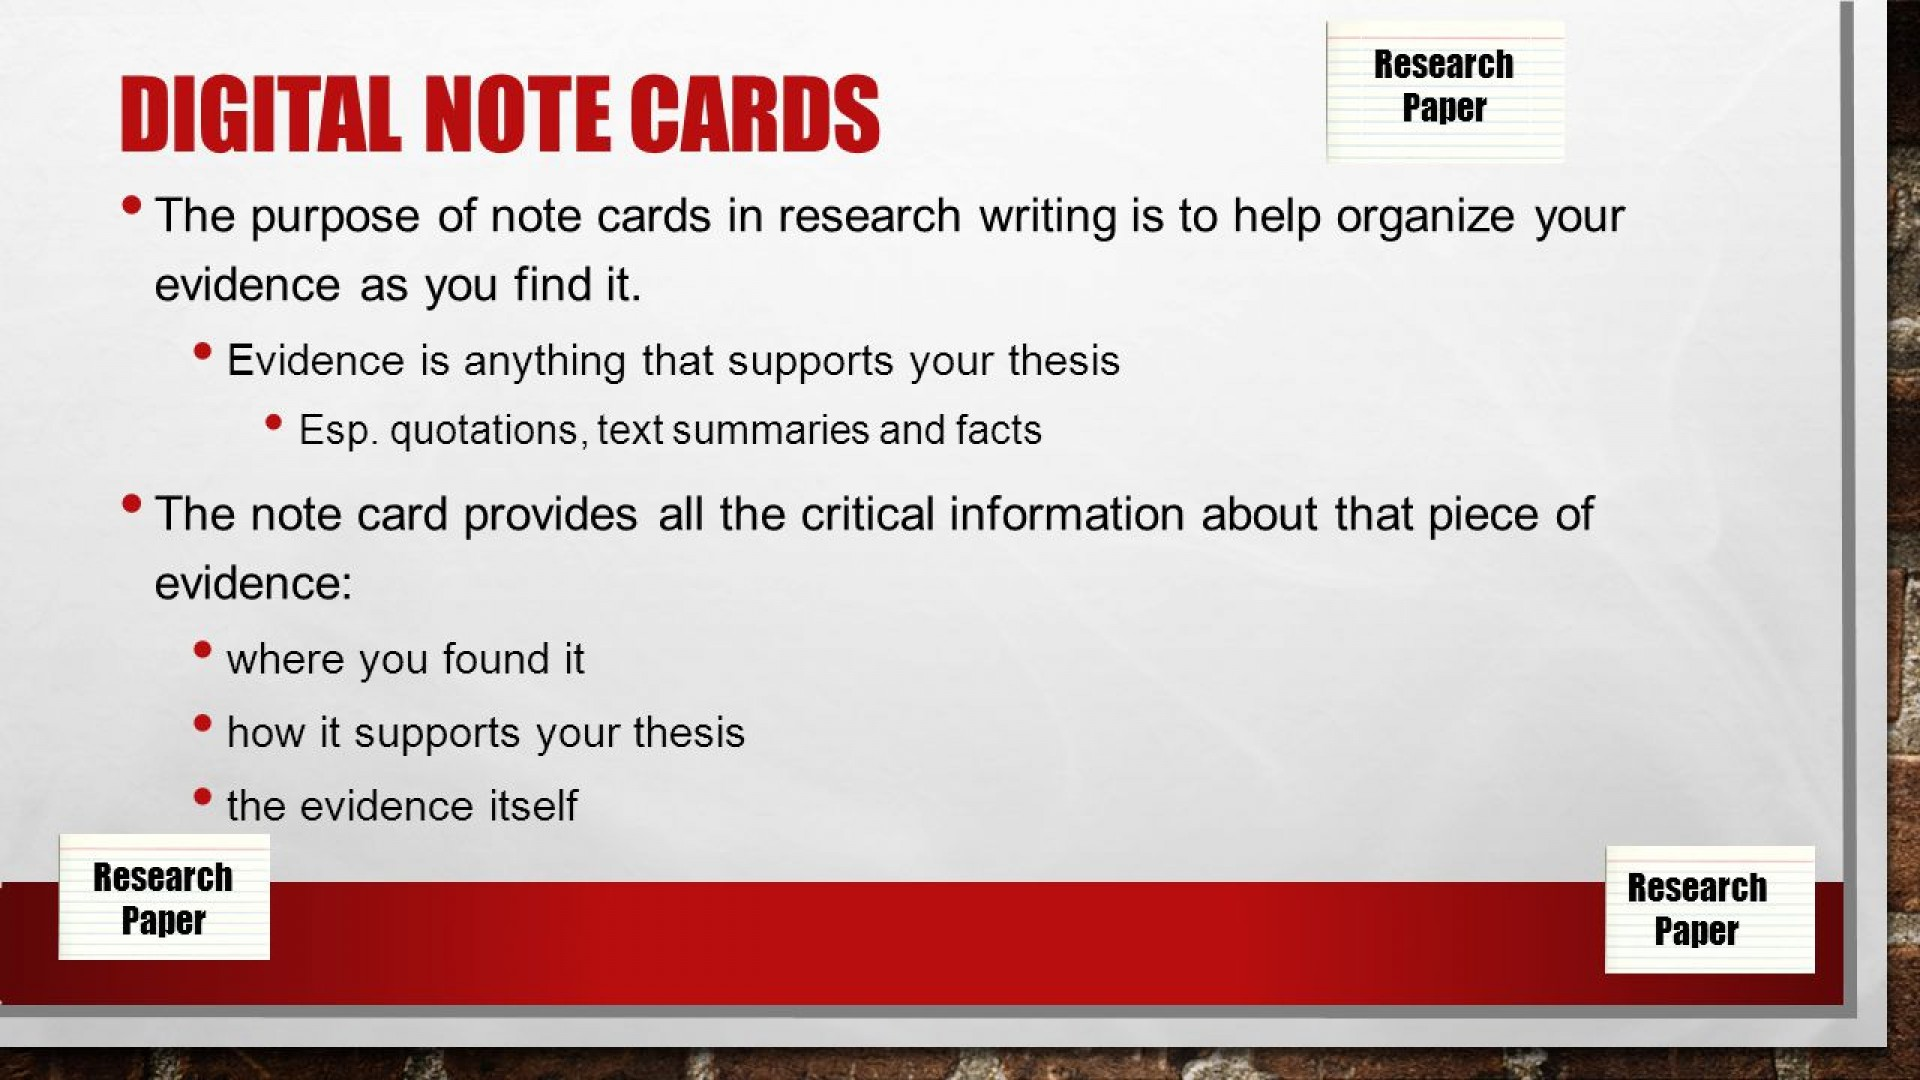 003 Slide 2 Notecards For Researchs Impressive Research Papers Paper Sample How To Write Mla 1920